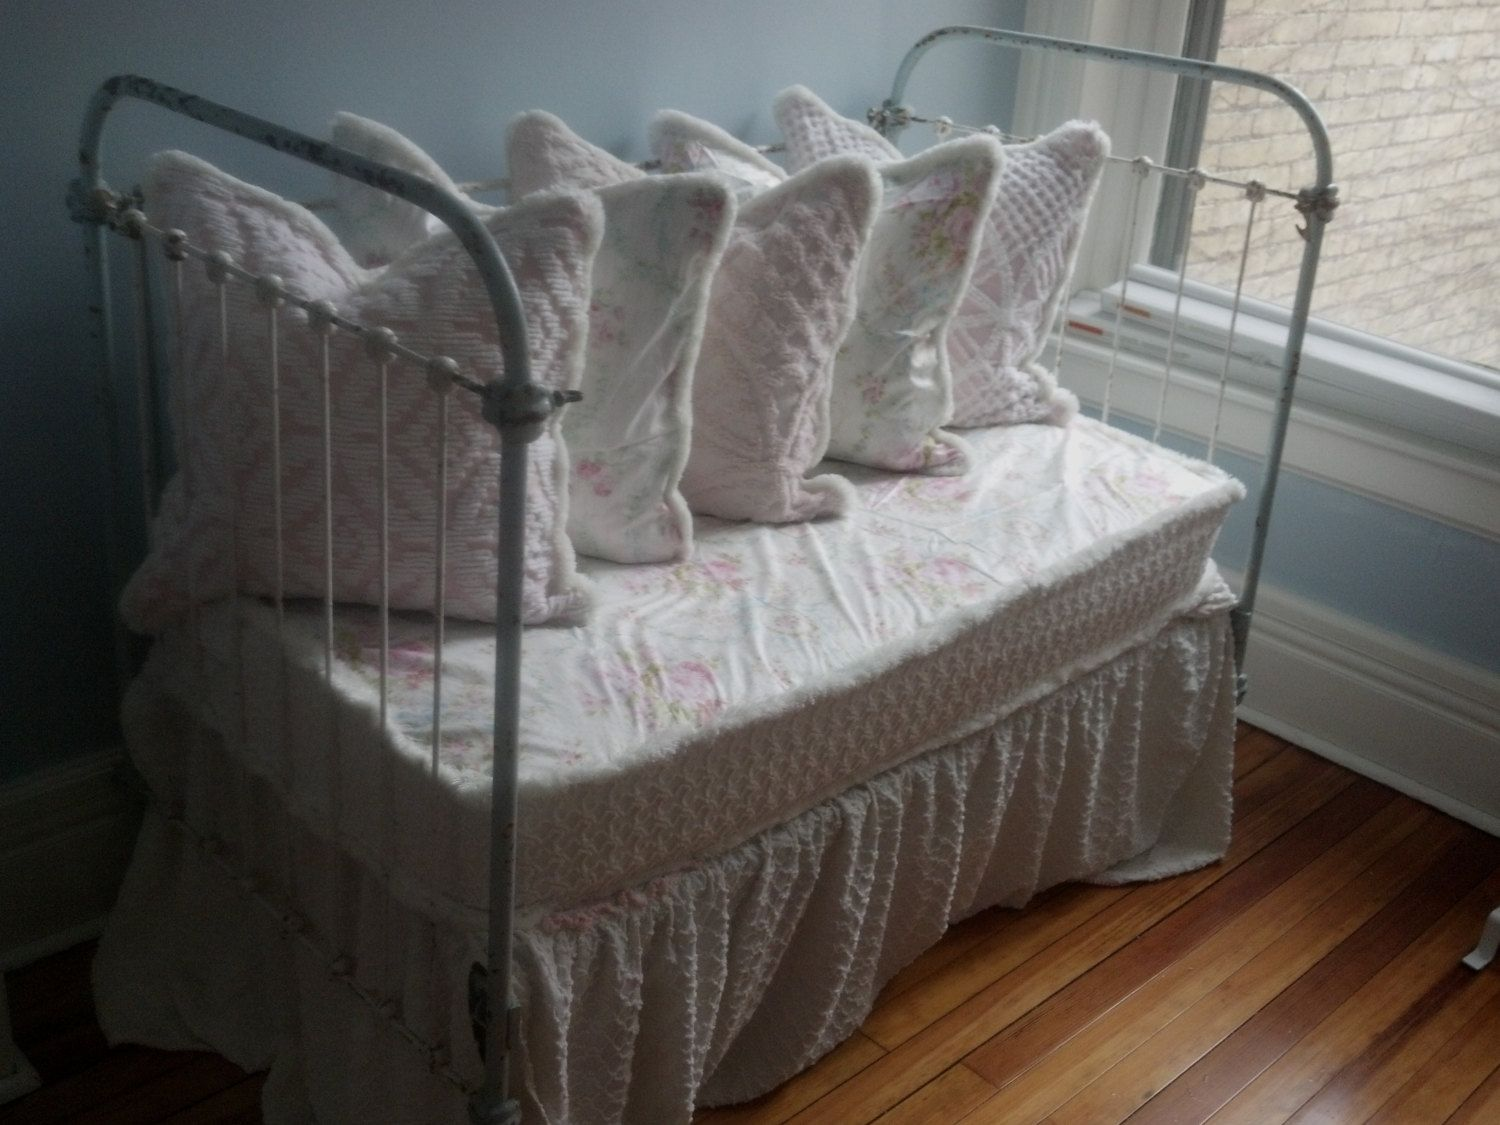 Used crib for sale atlanta - Custom Order Antique Wrought Iron Crib Settee Daybed Shabby Chic Chenille Bedspread Roses White Iron Cottage